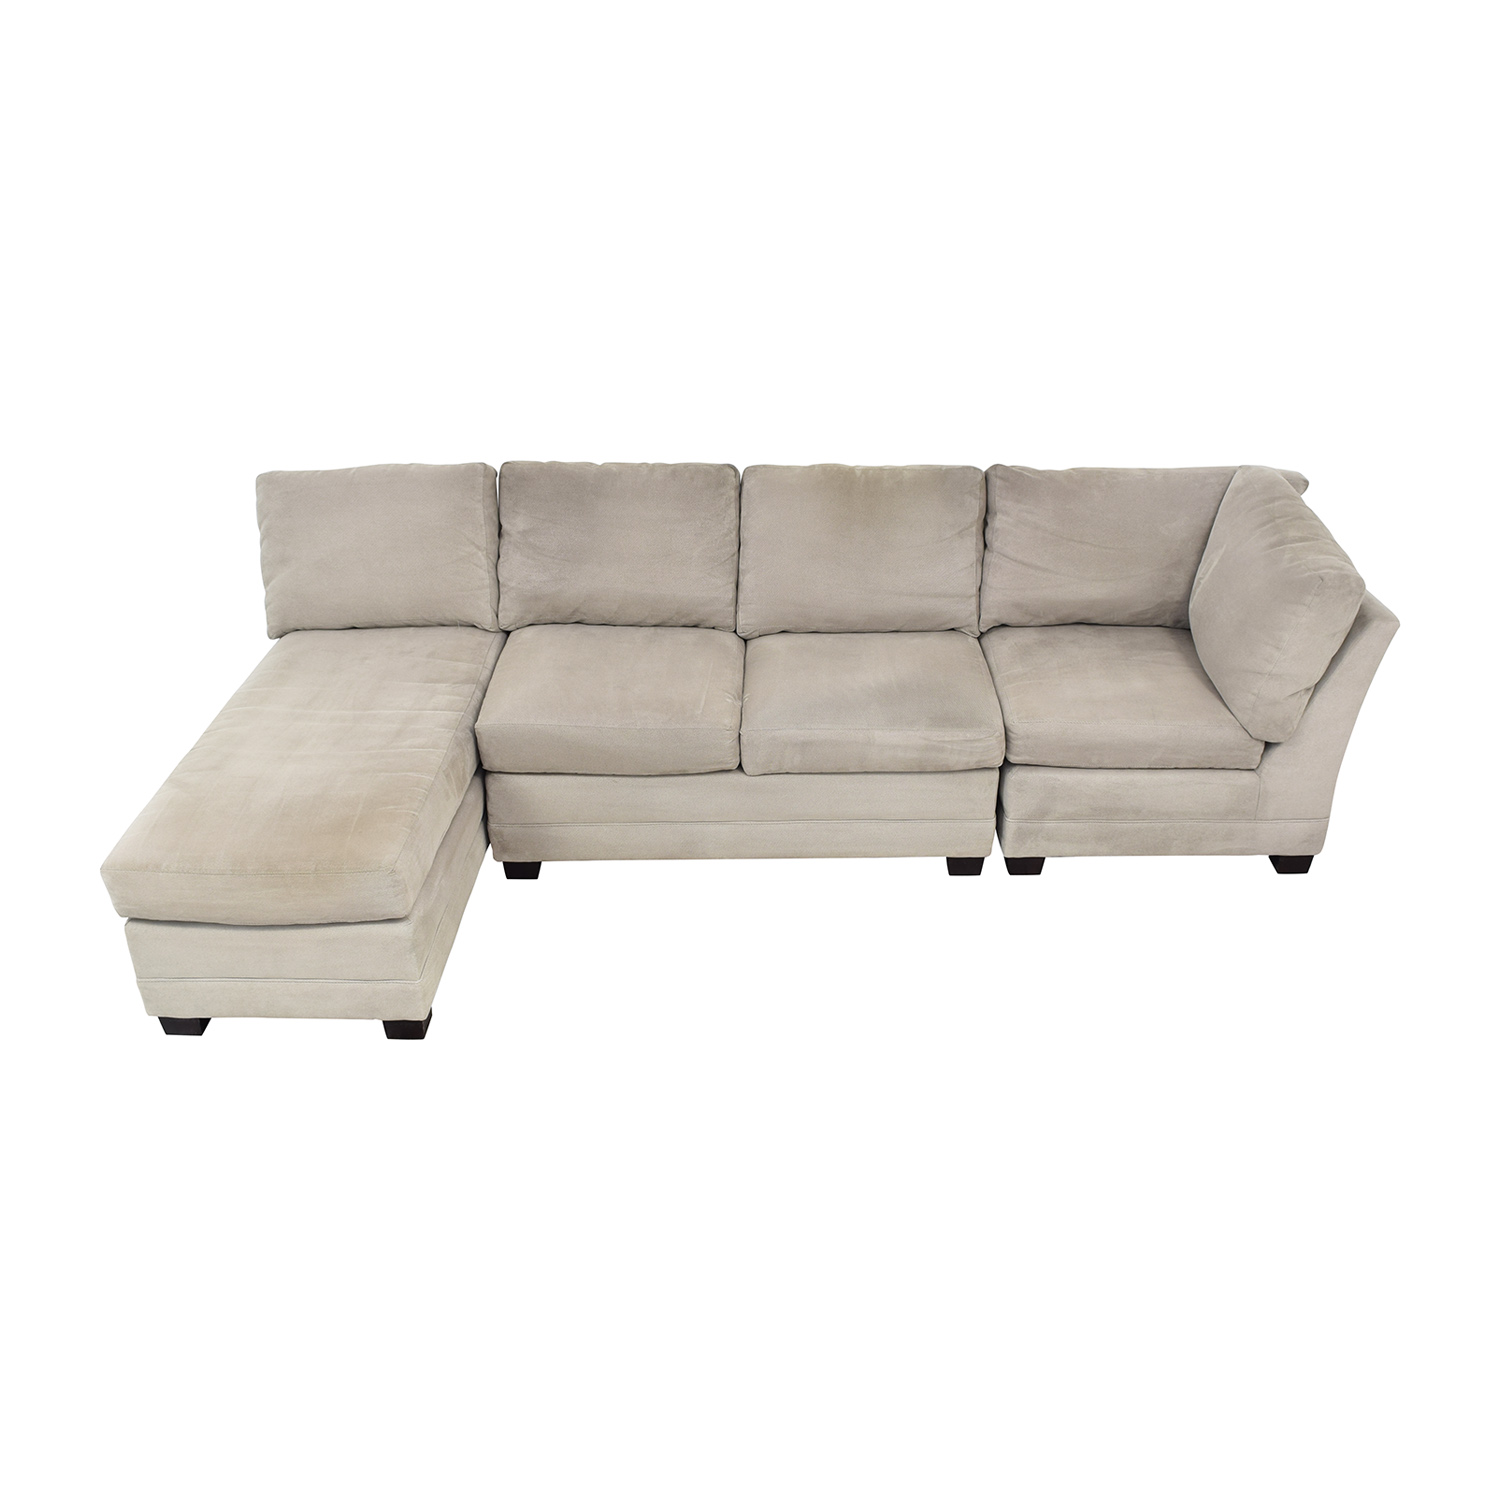 Crate & Barrel Crate & Barrel Sectional Sofa with Chaise on sale